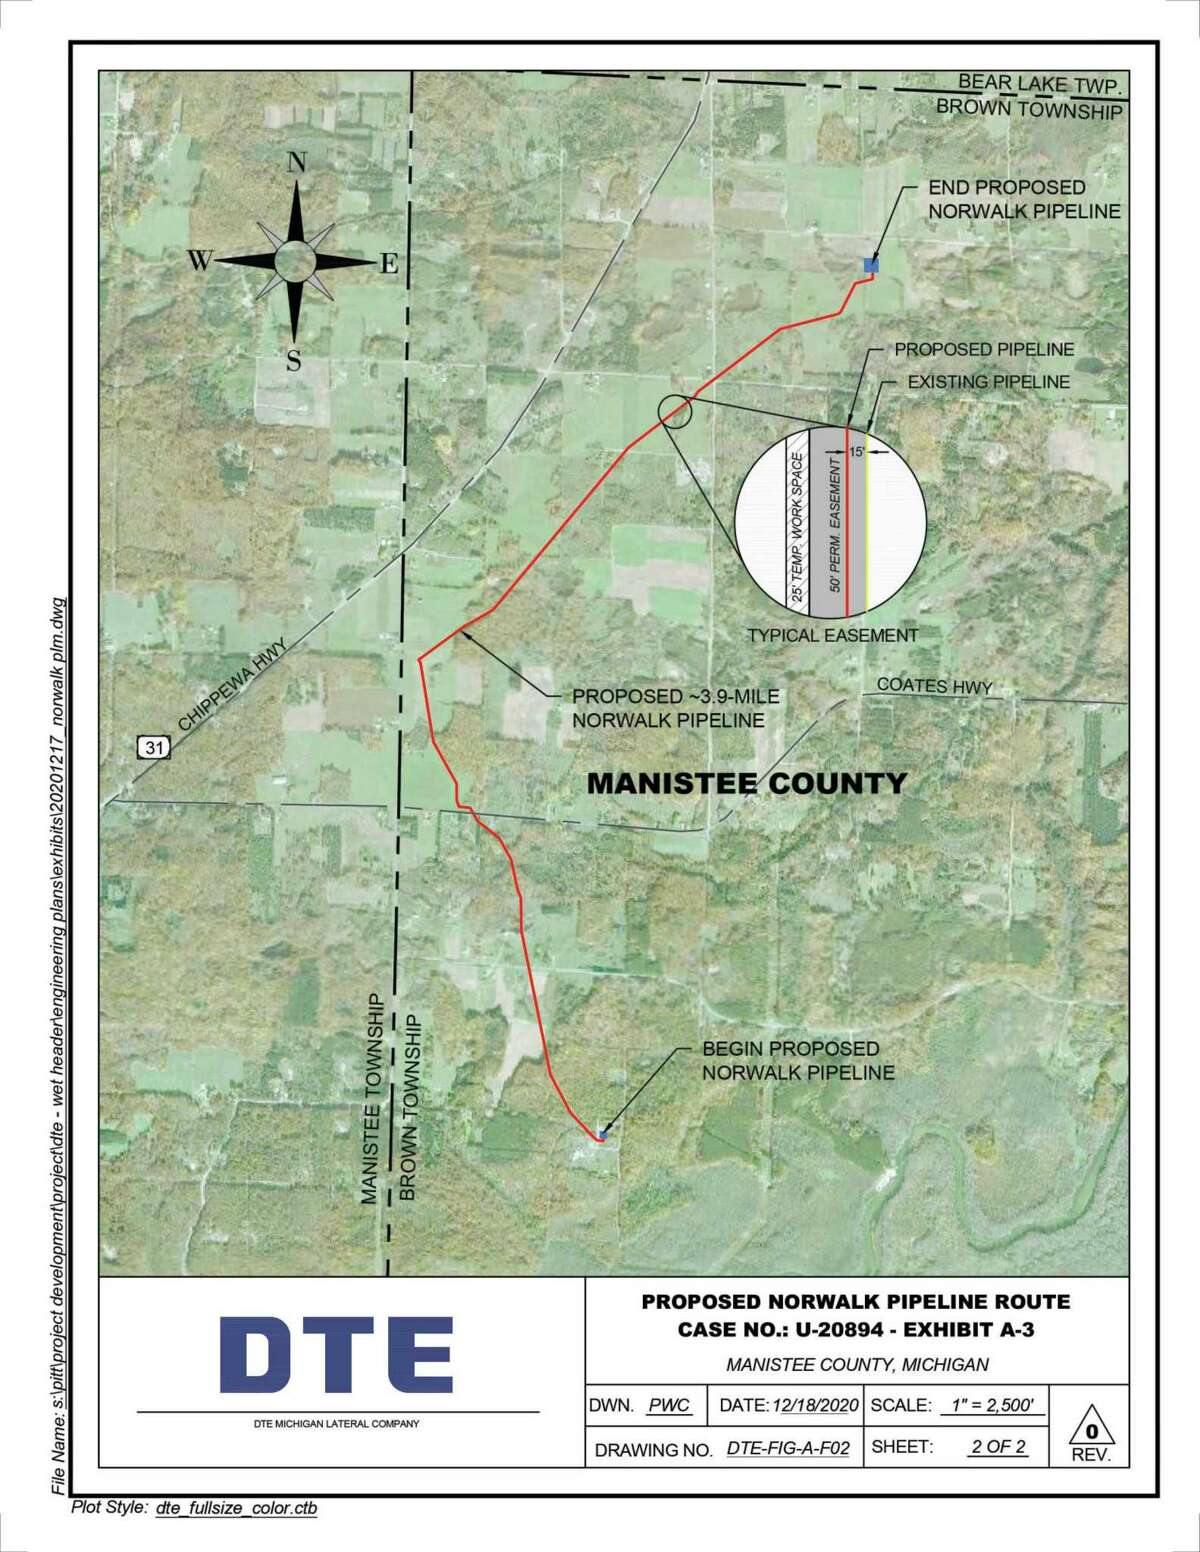 A map of the Manistee County portion of the DTE Pipeline project.(CourtesyMap/DTE Energy)